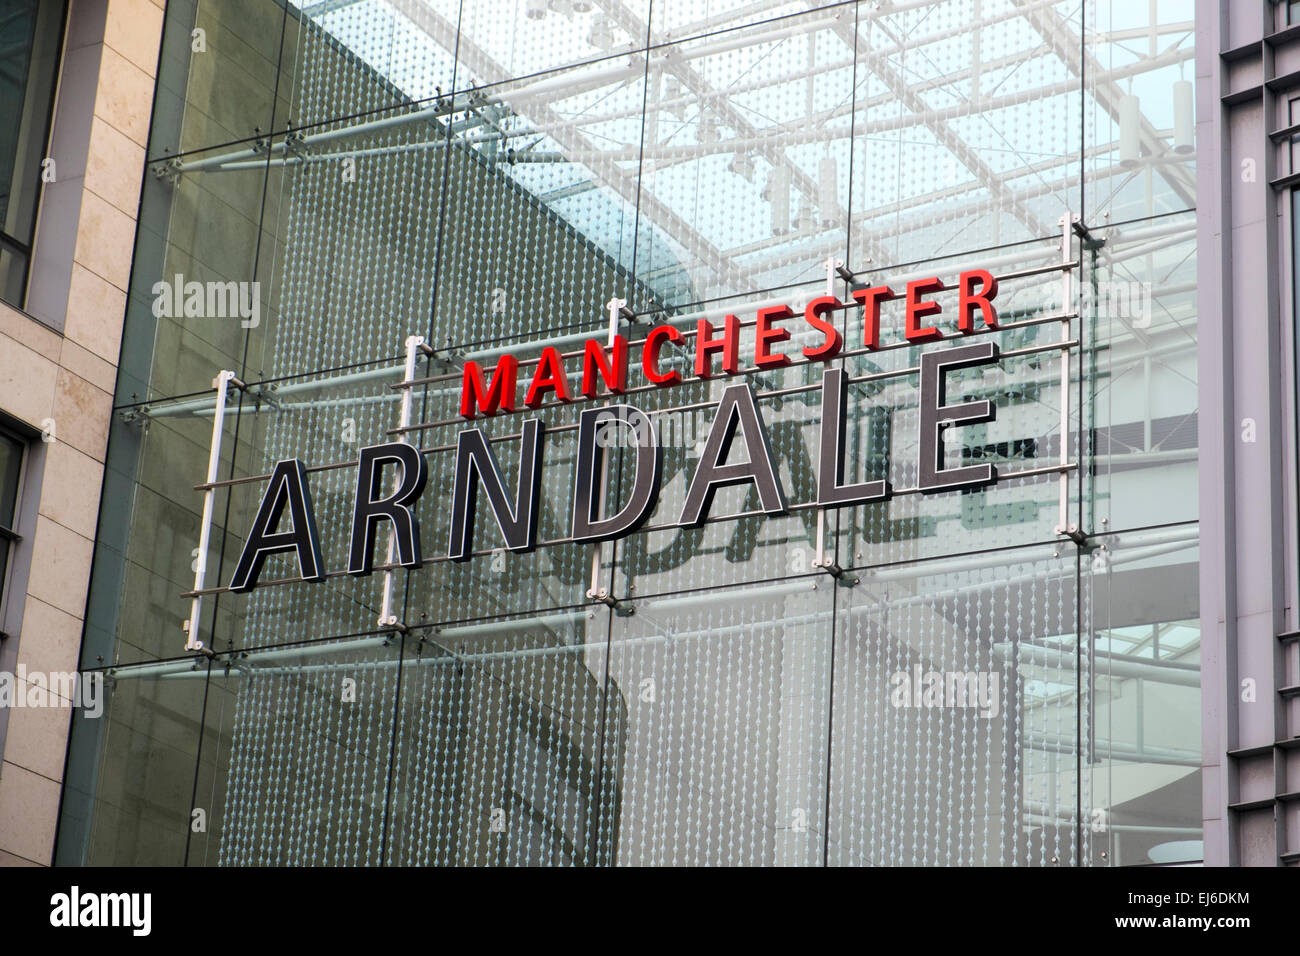 Manchester England - Stock Image